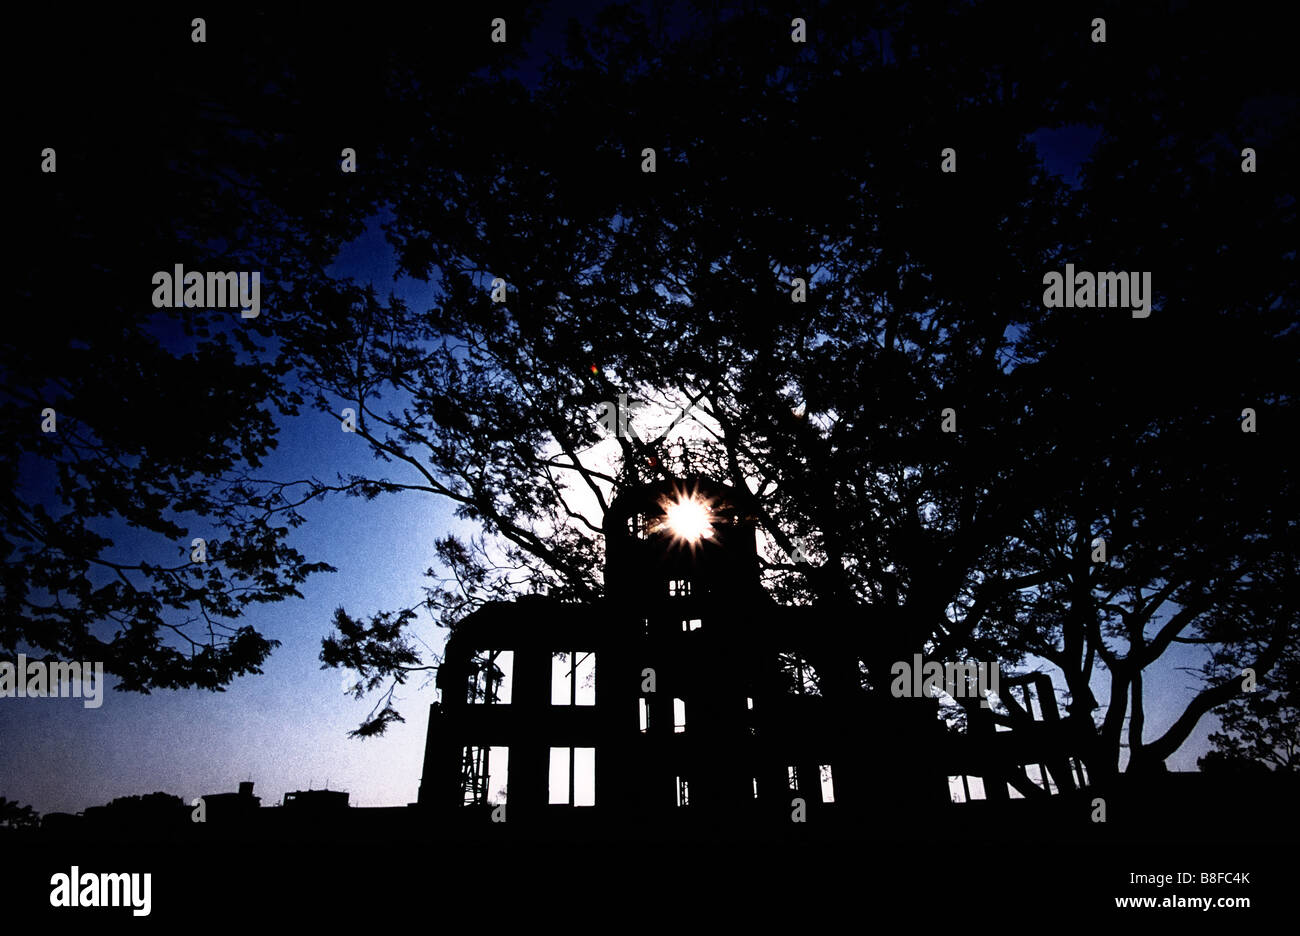 Photo shows the A-Bomb Dome in Hiroshima Japan - Stock Image